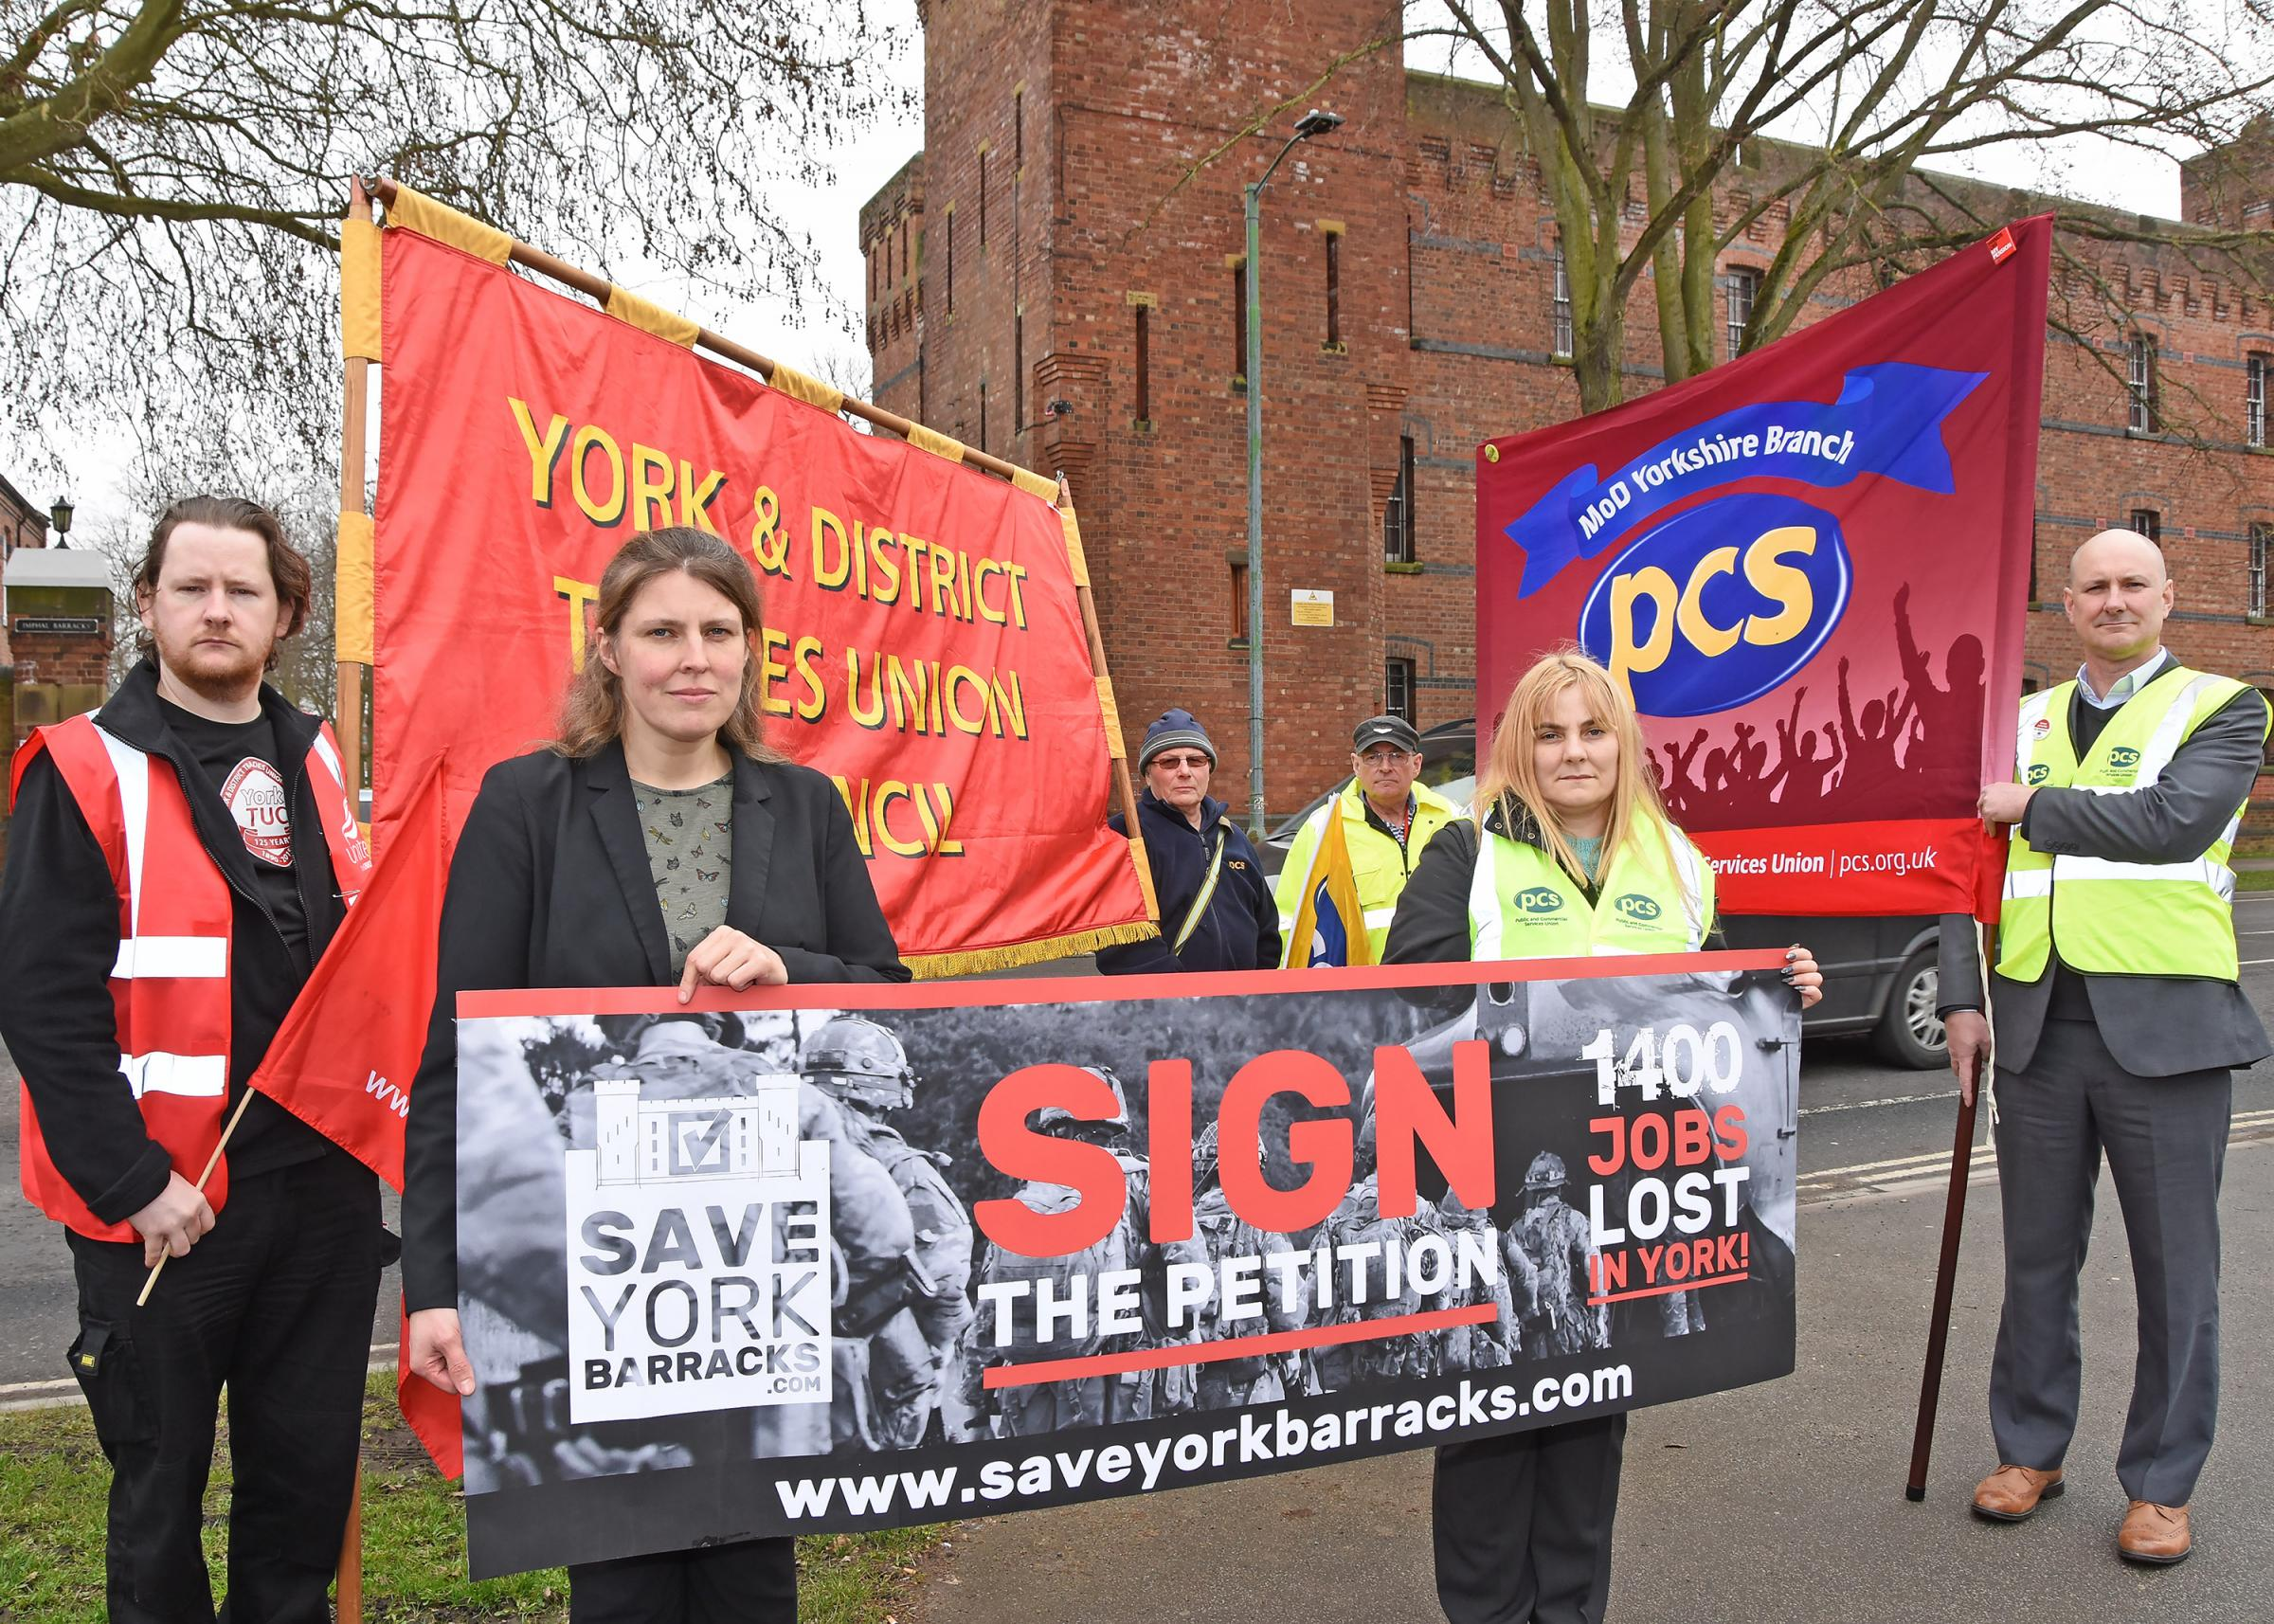 York MP launches campaign to save barracks